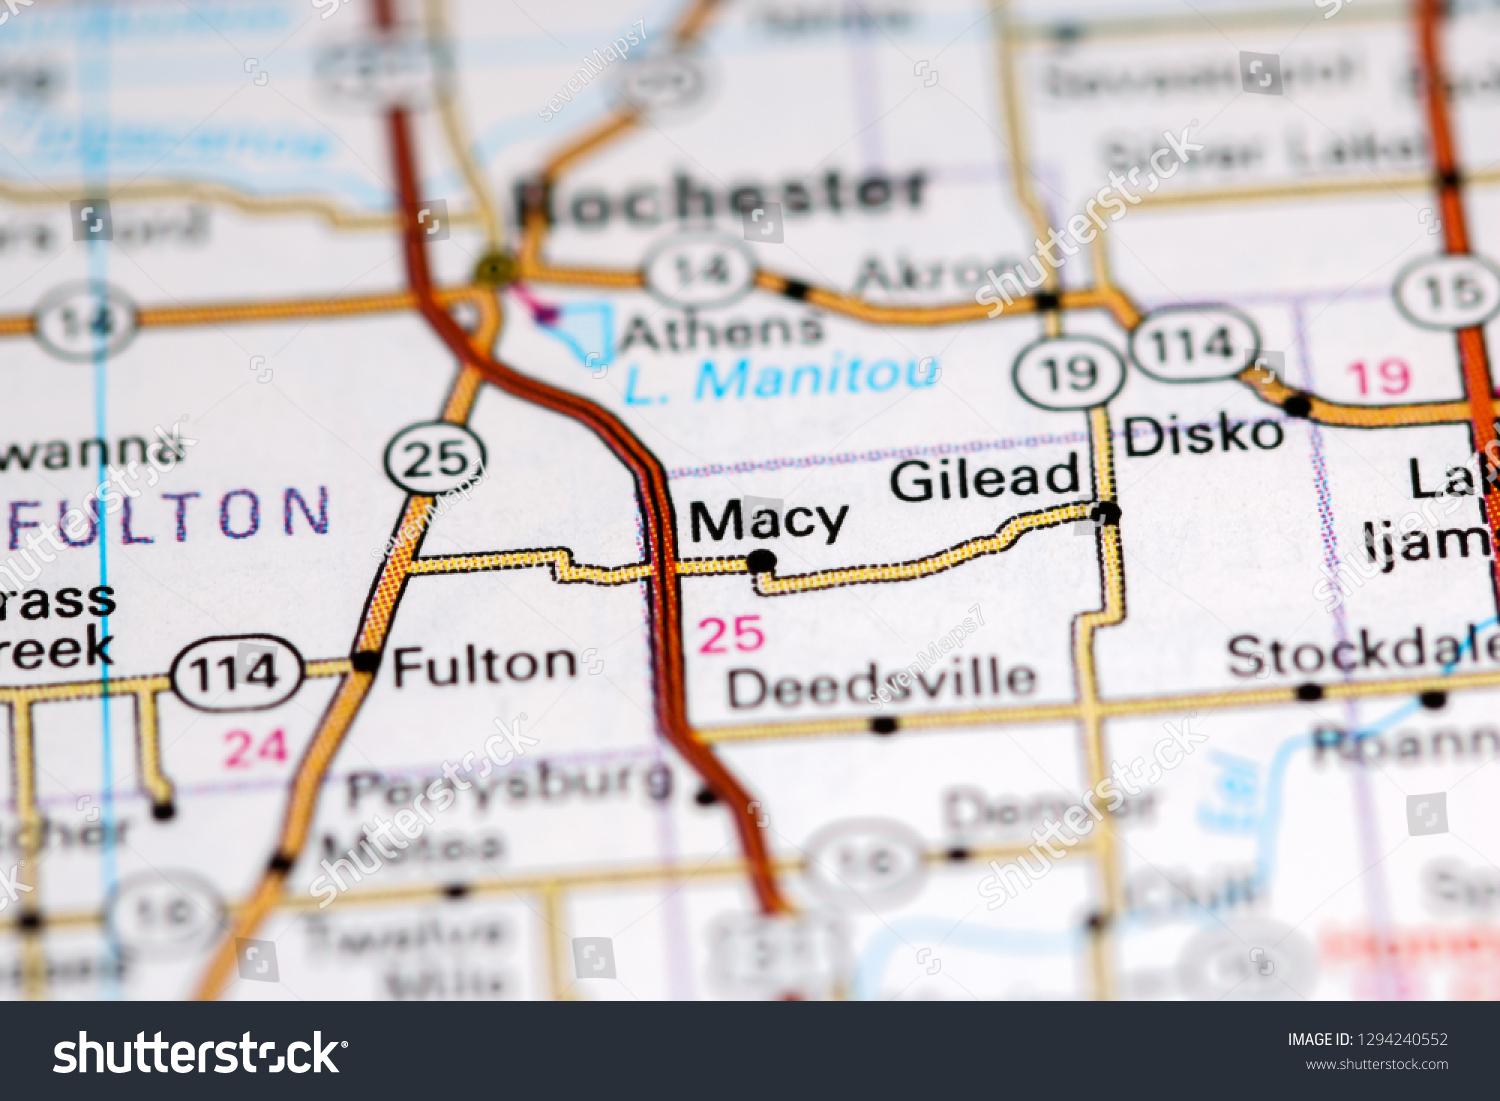 Macy Indiana Usa On Map | Royalty-Free Stock Image on eastern time zone map, central time zone map, bloomington map, bunker hill map, fremont map,